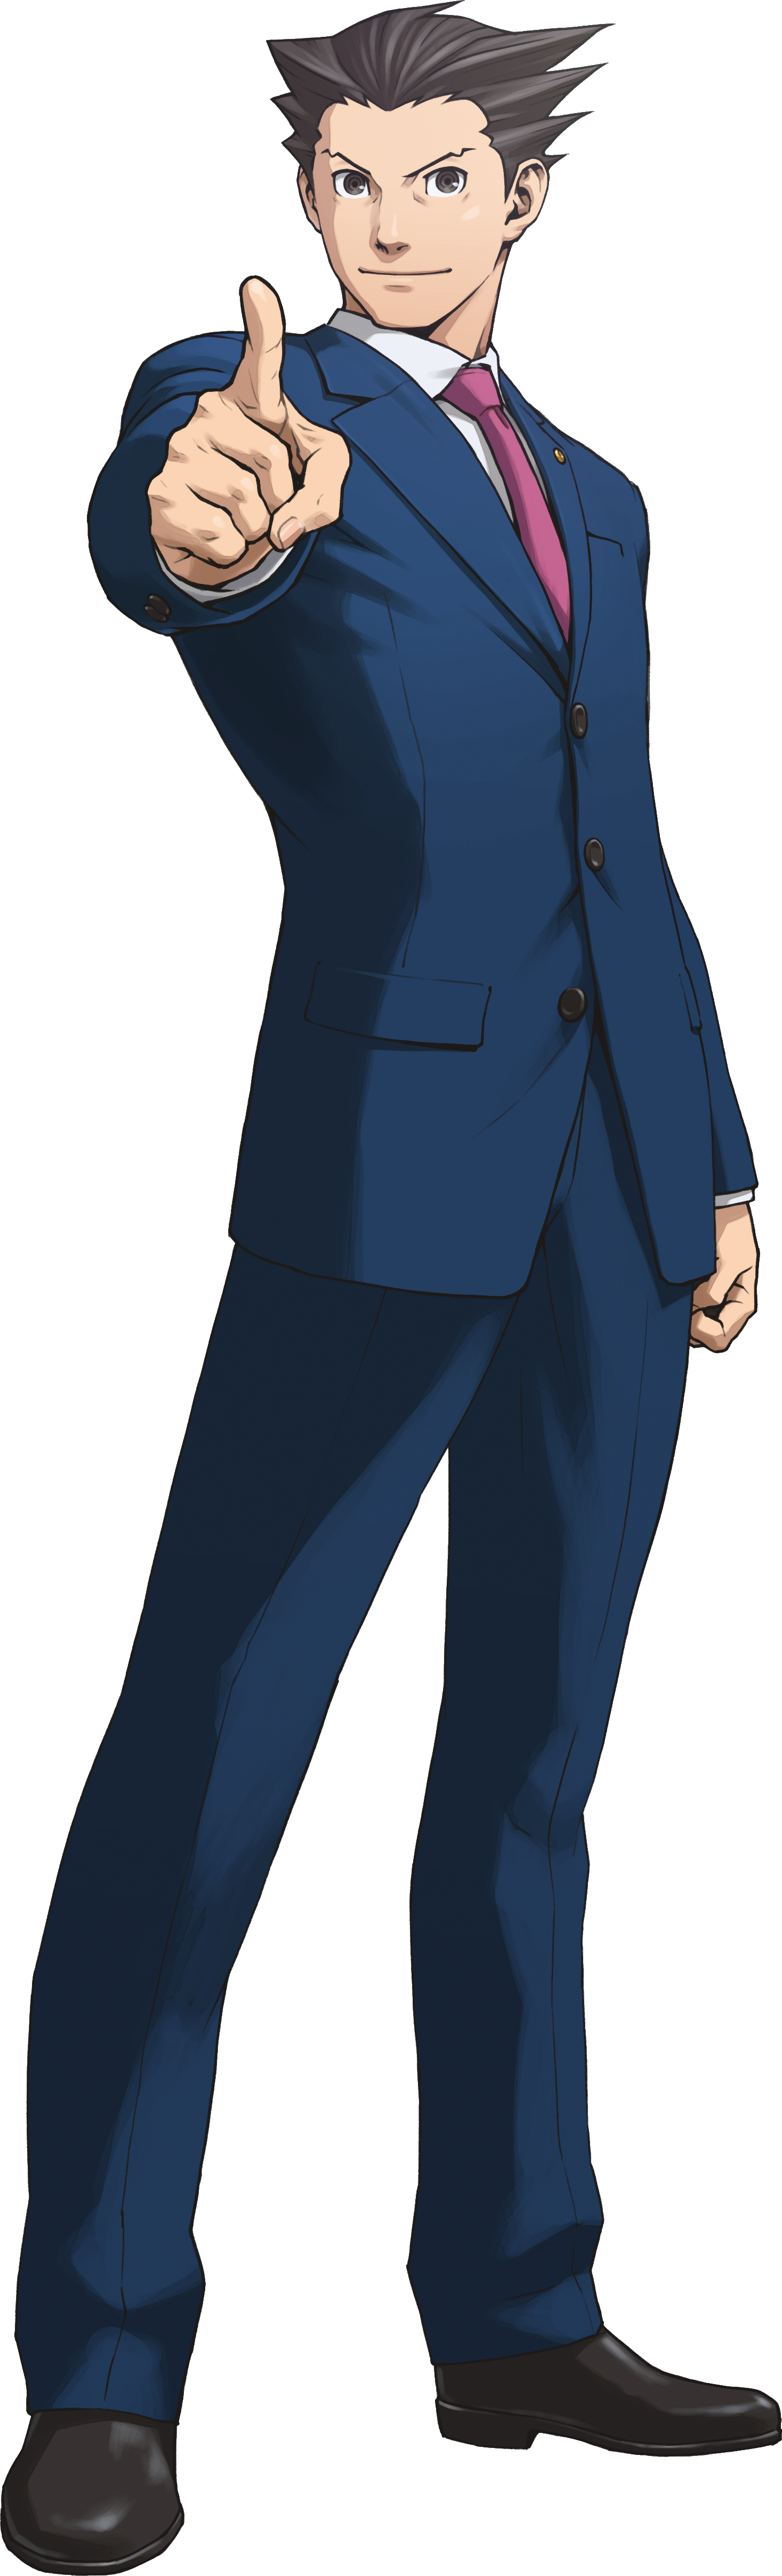 Ace Attorney PNG - 173151